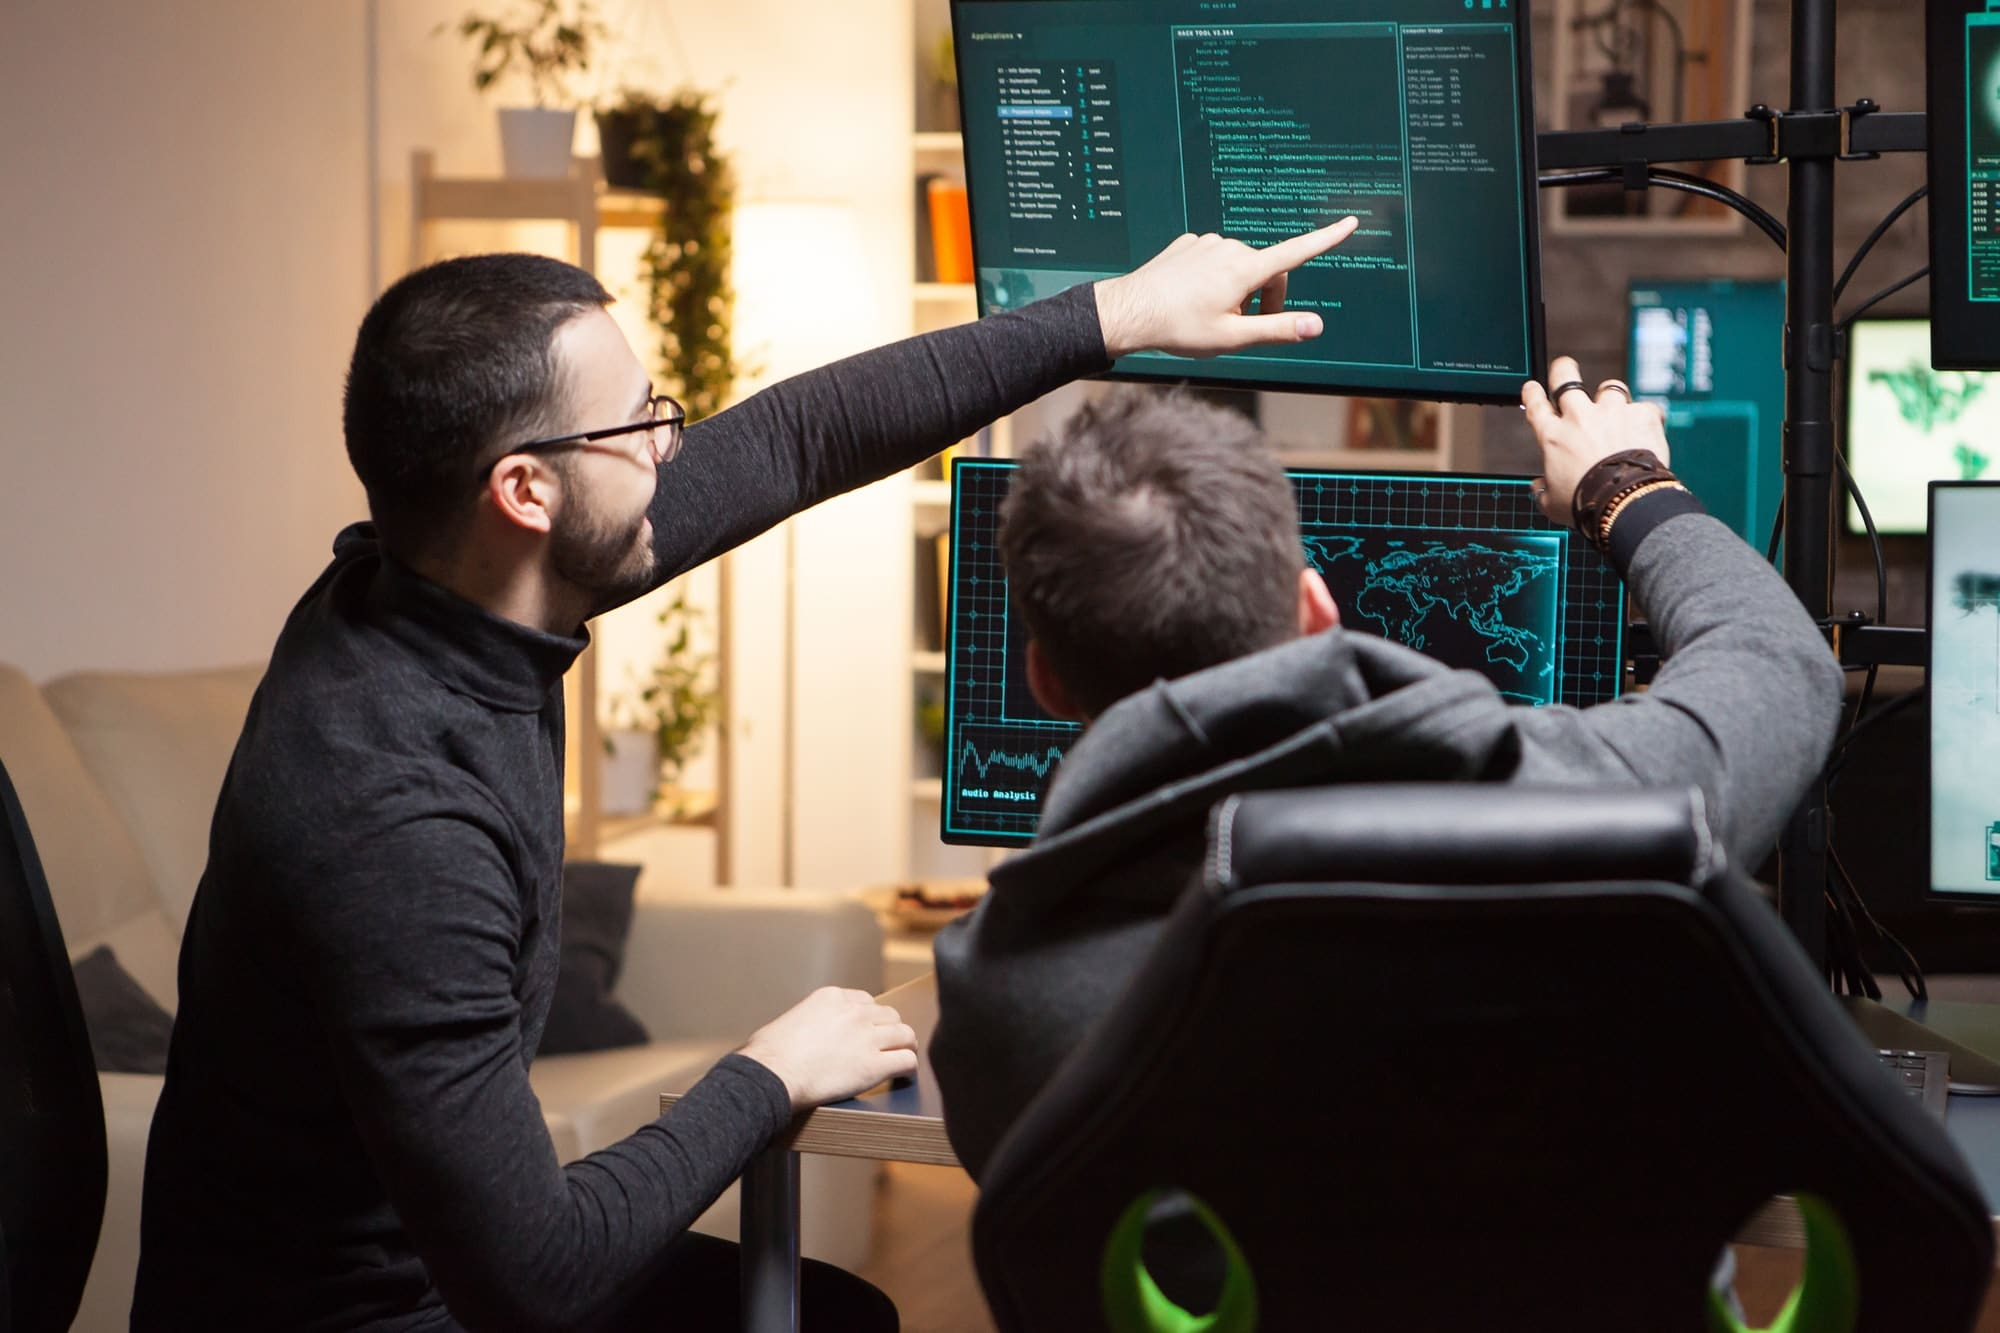 Back view of hackers pointing on computer screens